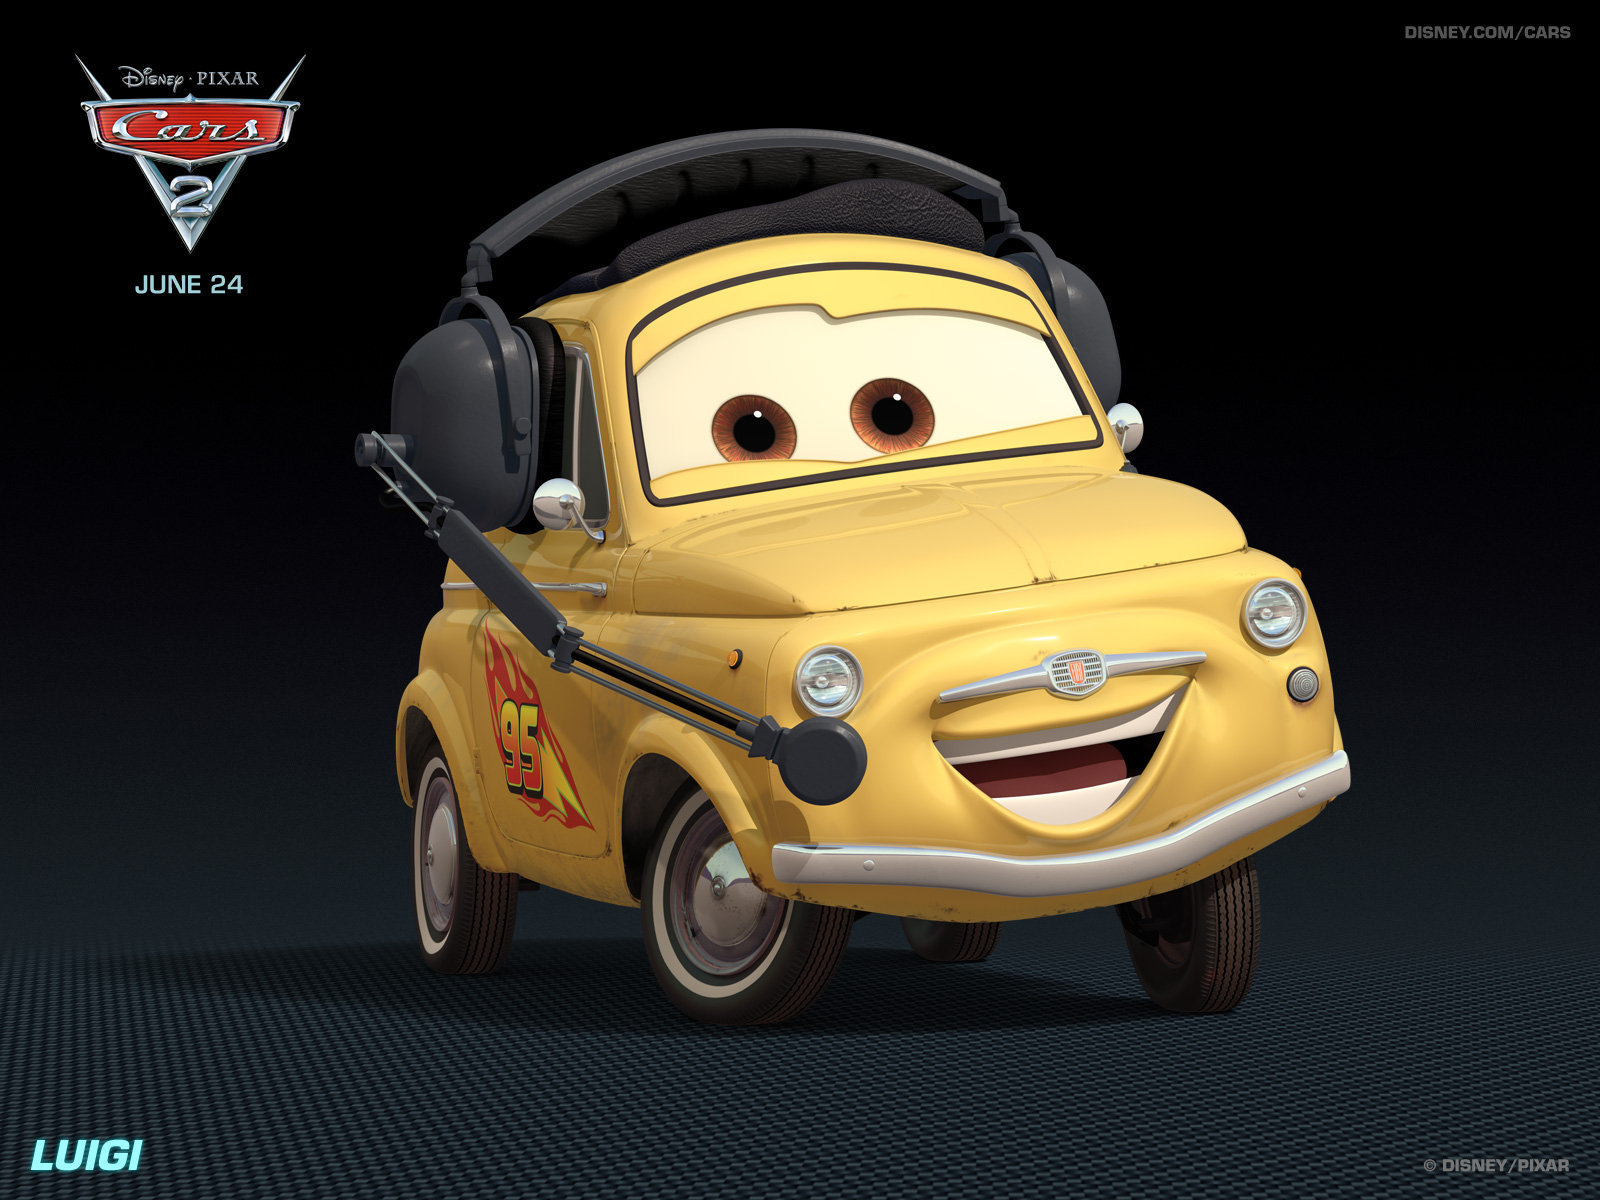 cars 2 2011 upcoming movies wallpaper 20051169 fanpop. Black Bedroom Furniture Sets. Home Design Ideas